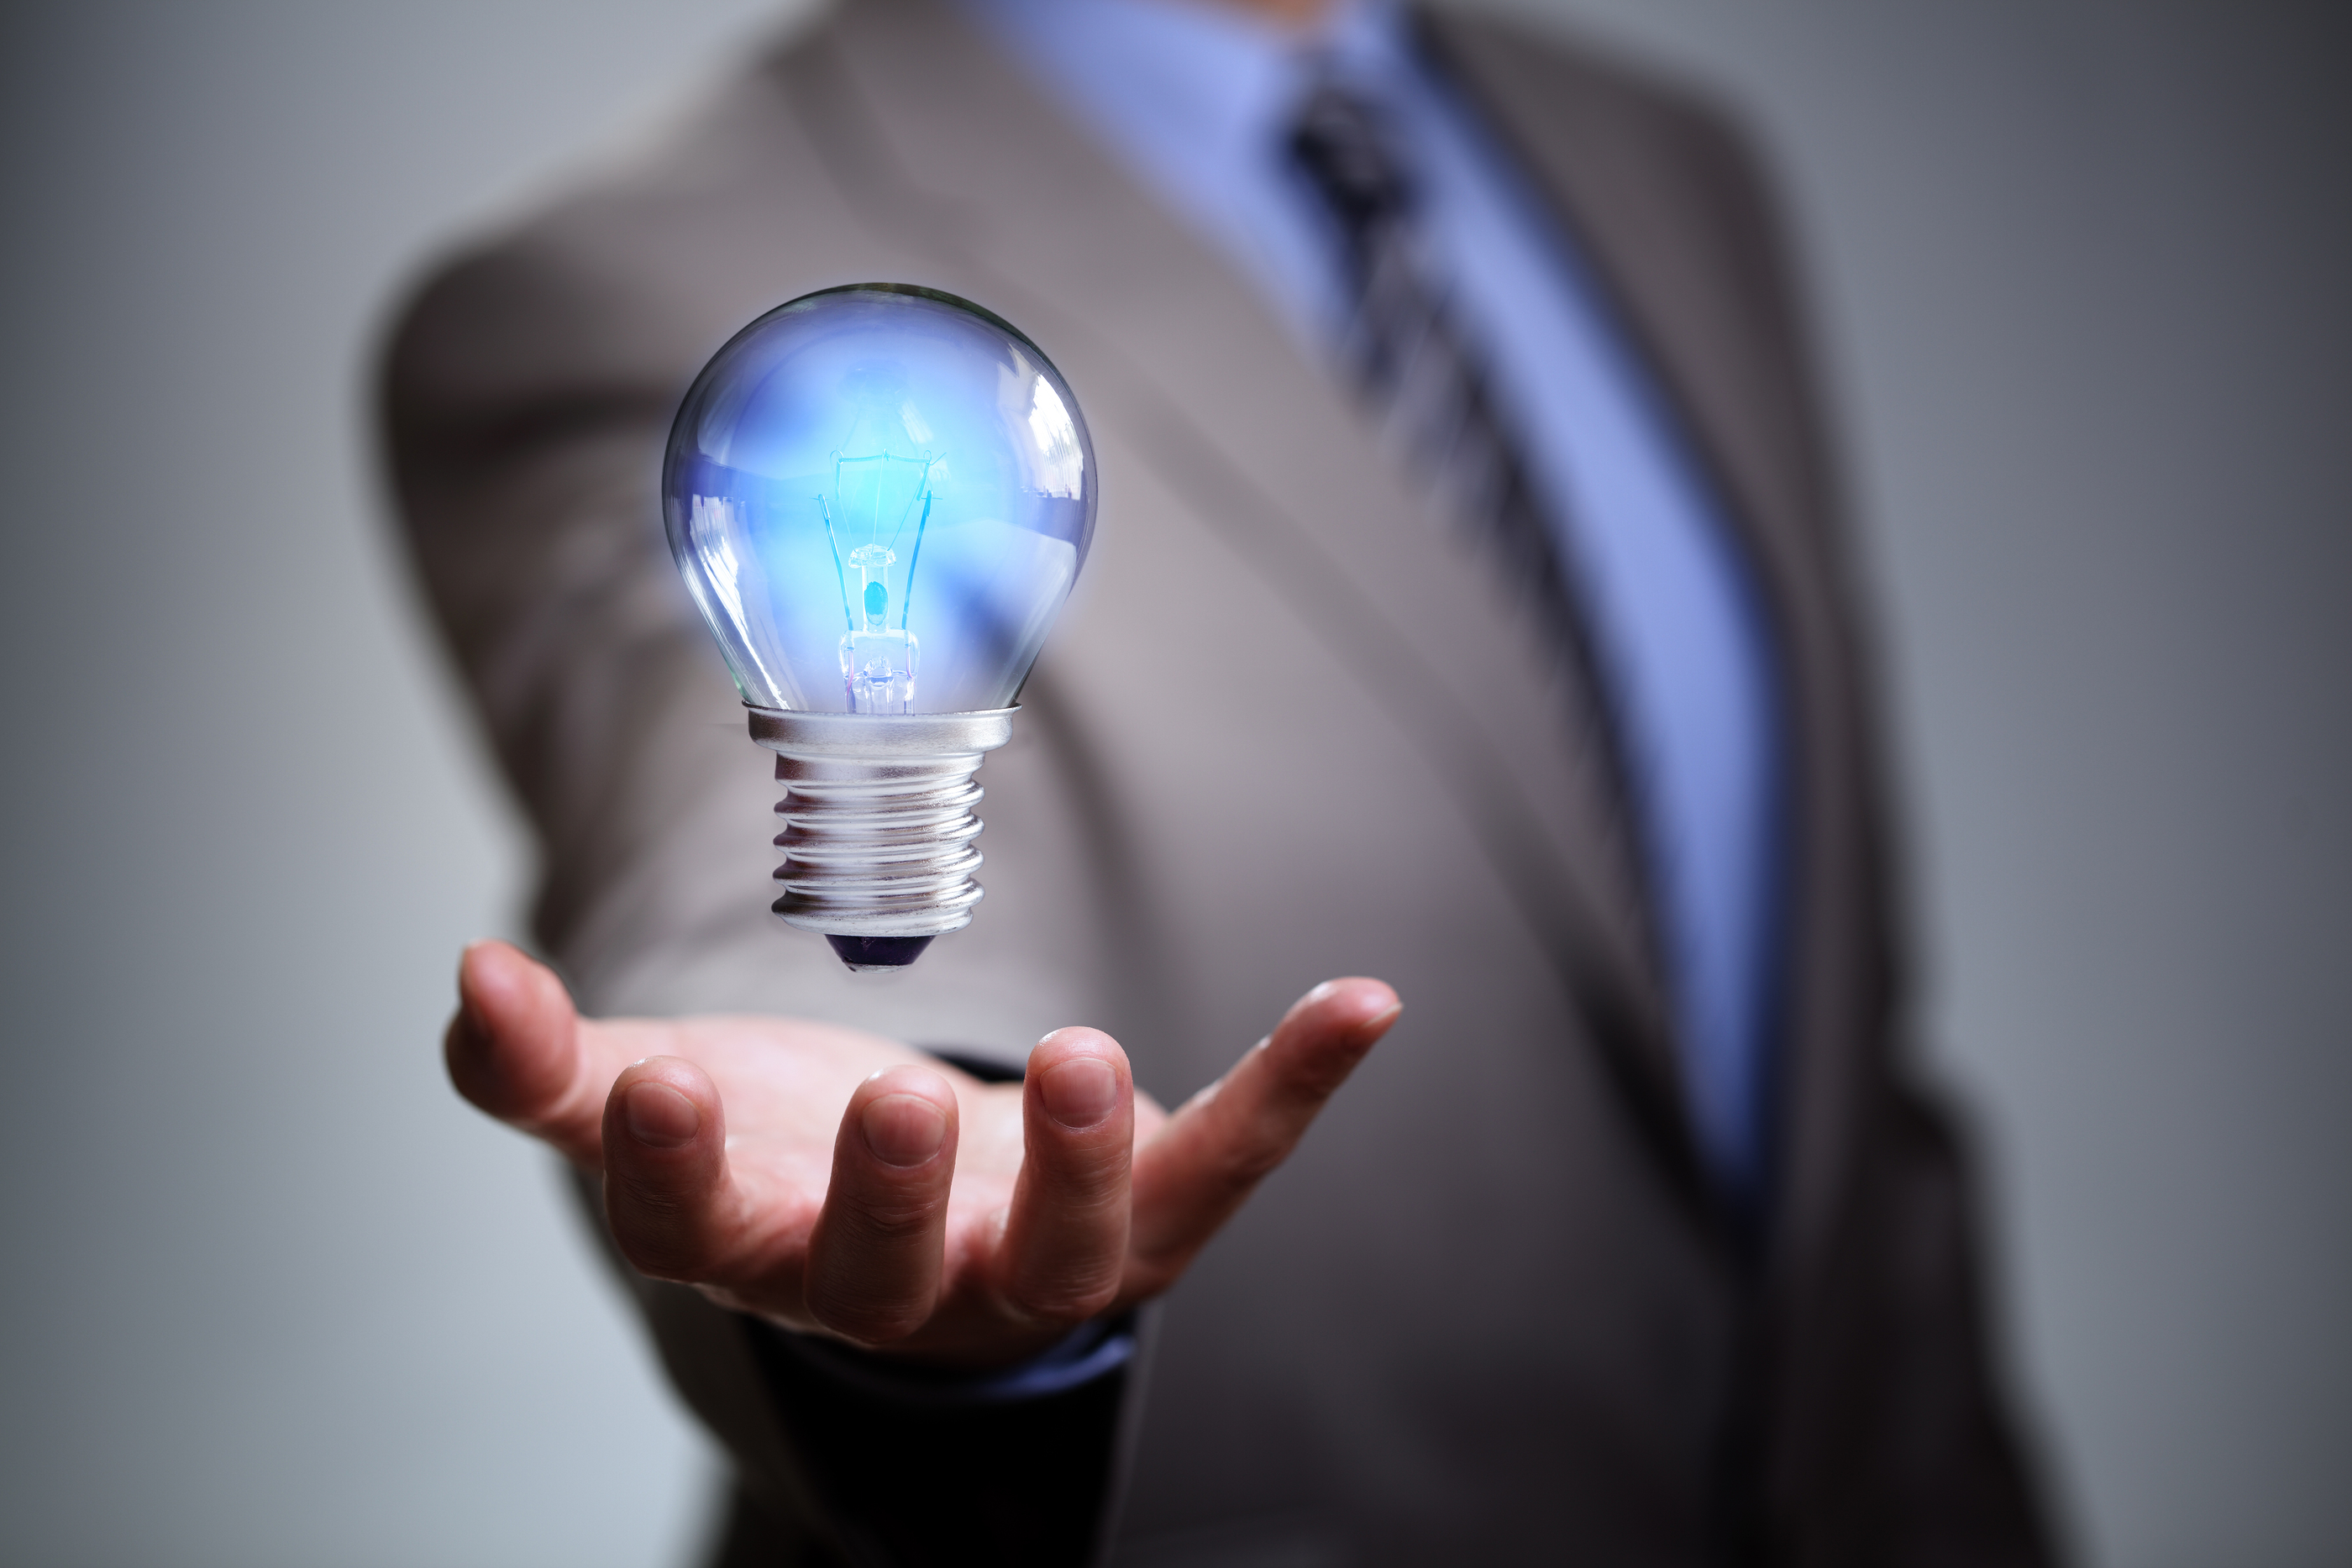 Businessman with illuminated light bulb concept for idea, innovation and inspira